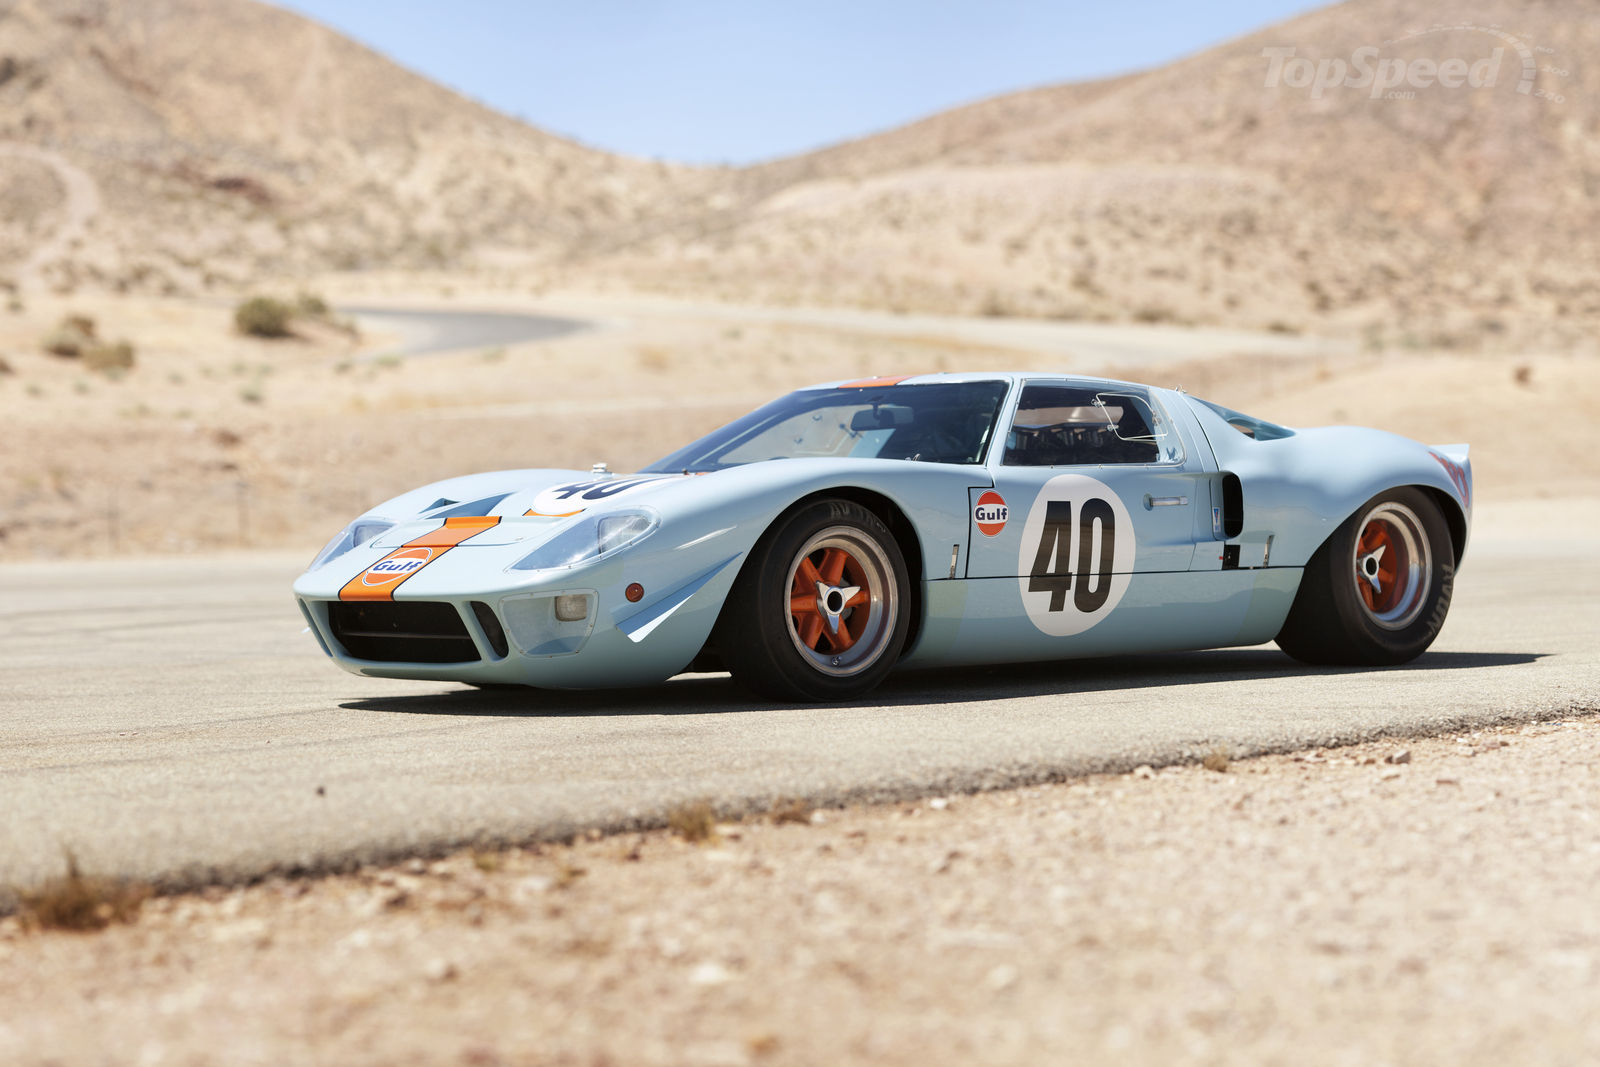 Ford Old Ford Gt In Gulf Oil Colors Wallpapers